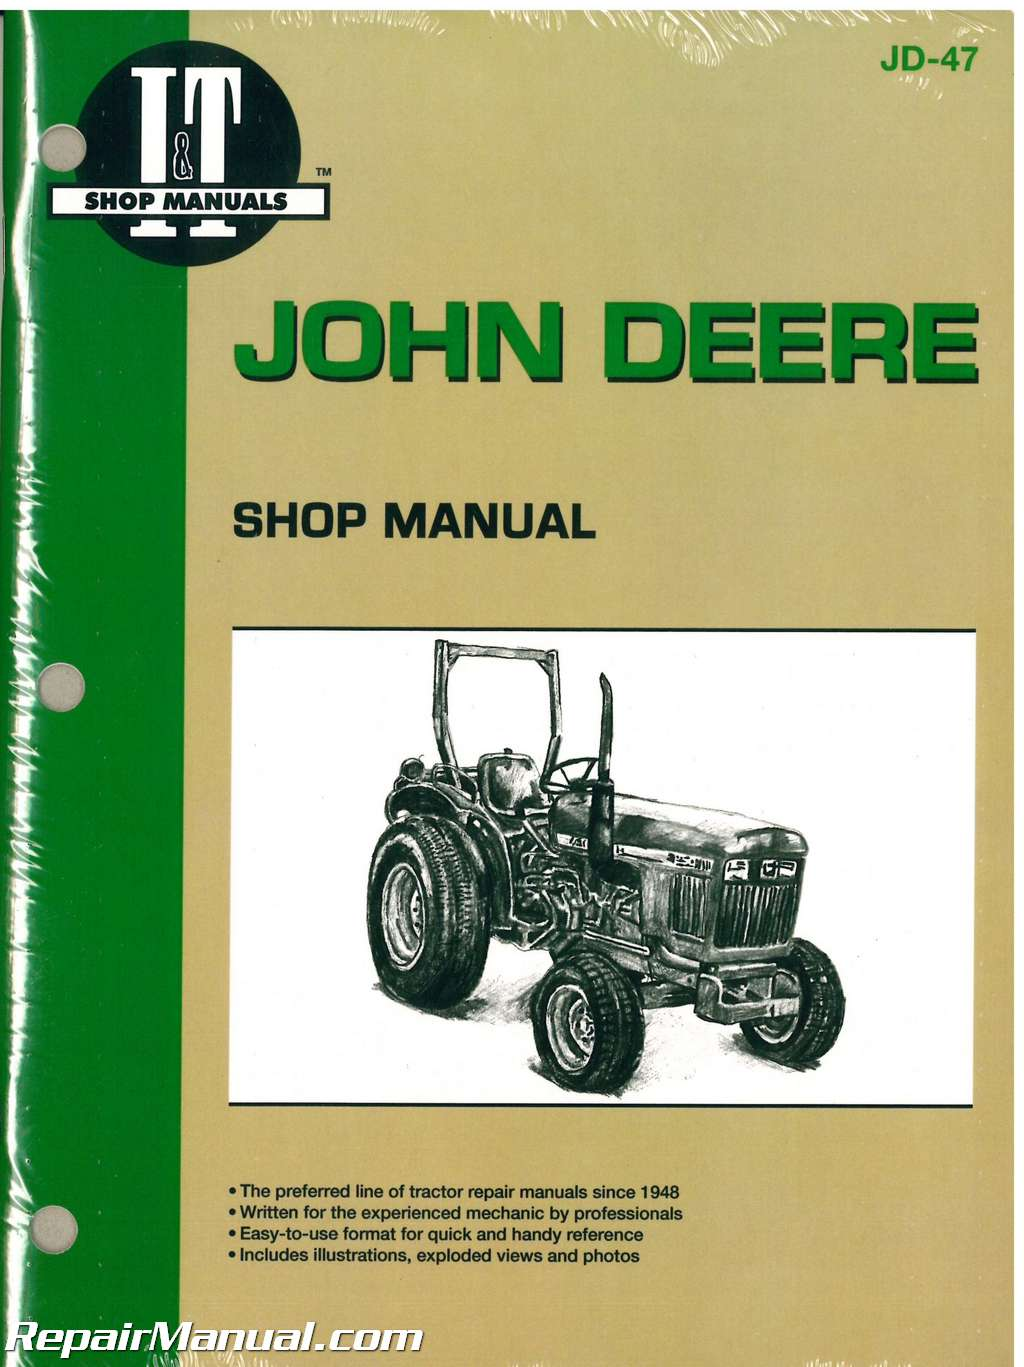 John Deere Tractor Workshop Manual